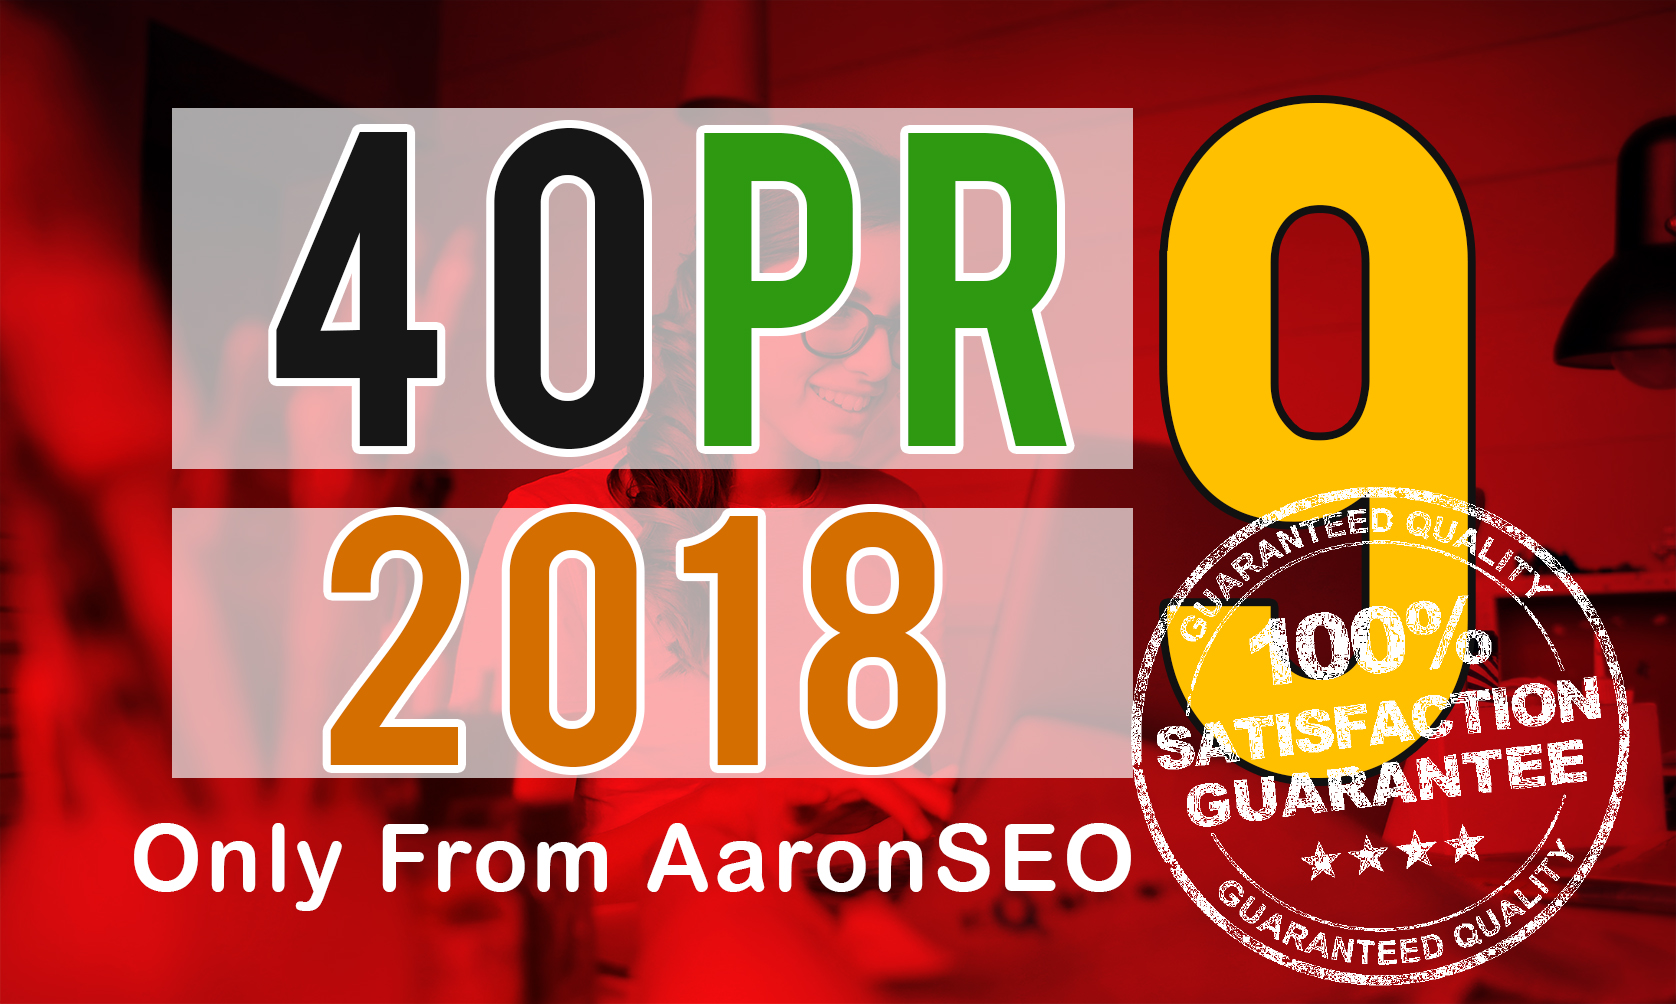 [Best Sell-2017]- I will manually do 40 PR9 Safe SEO High Pr Backlinks 2018 Best Results